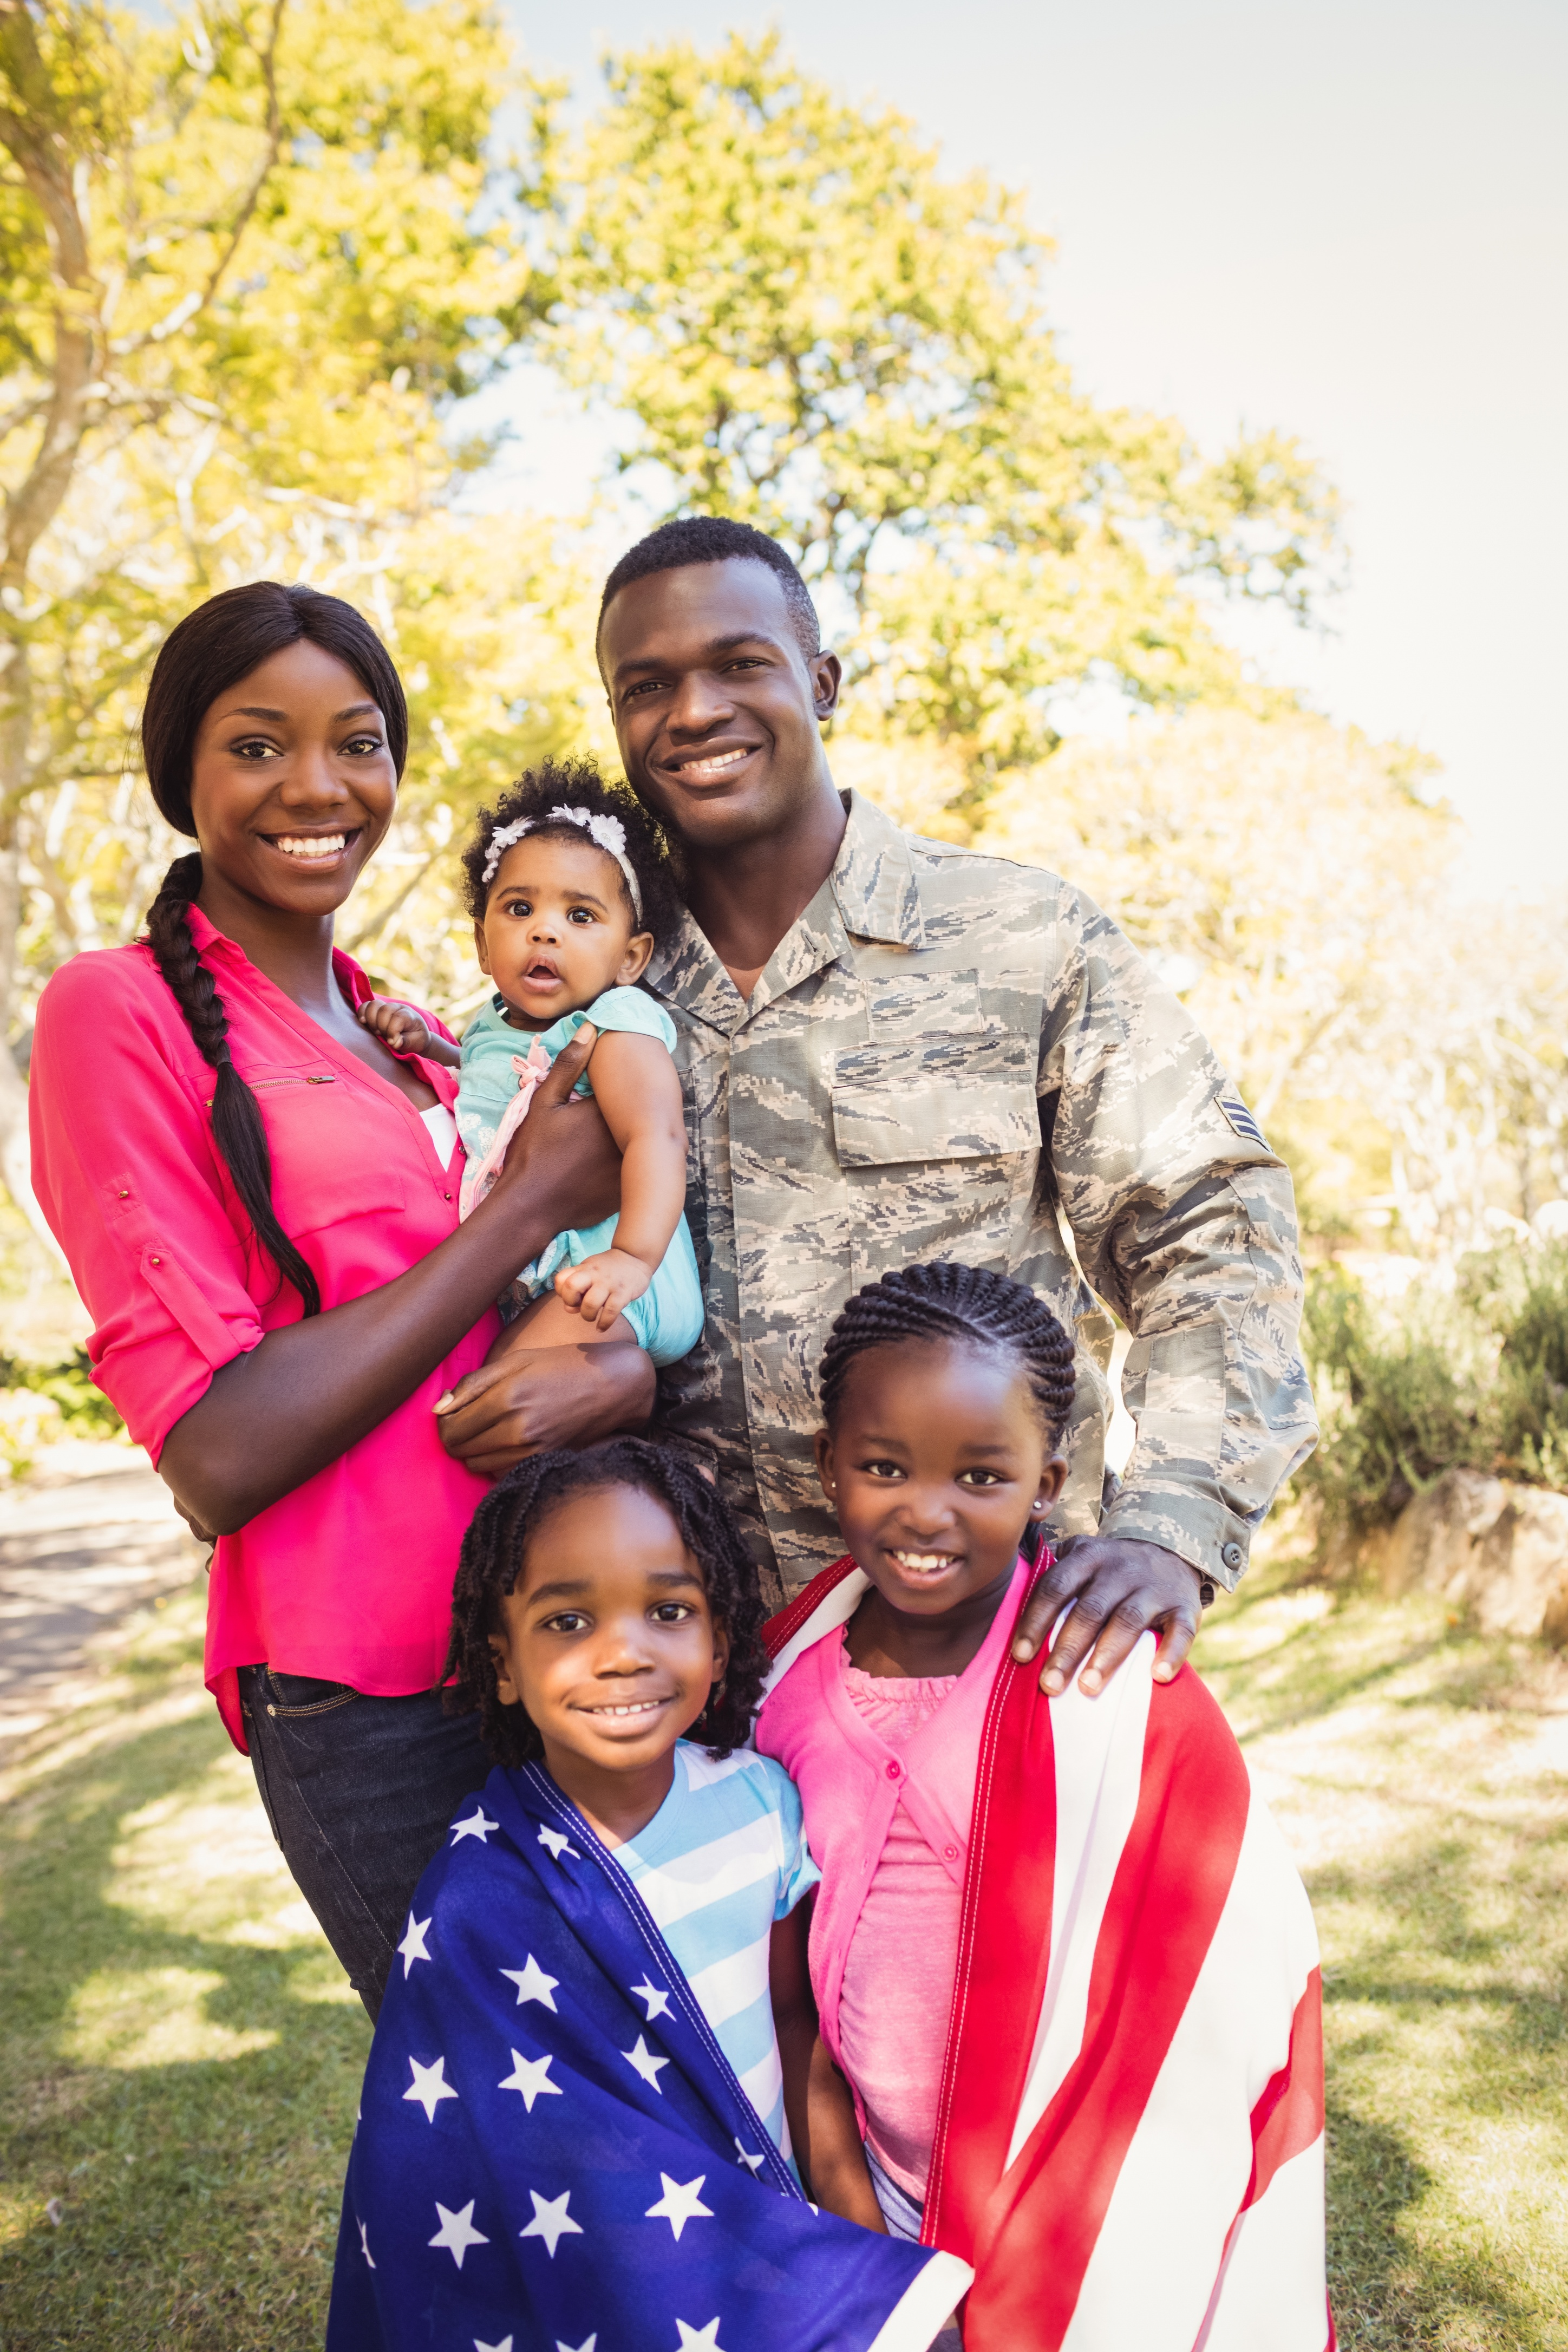 A family, including a father in military dress and two children wrapped in an American flag, smiles at the camera.